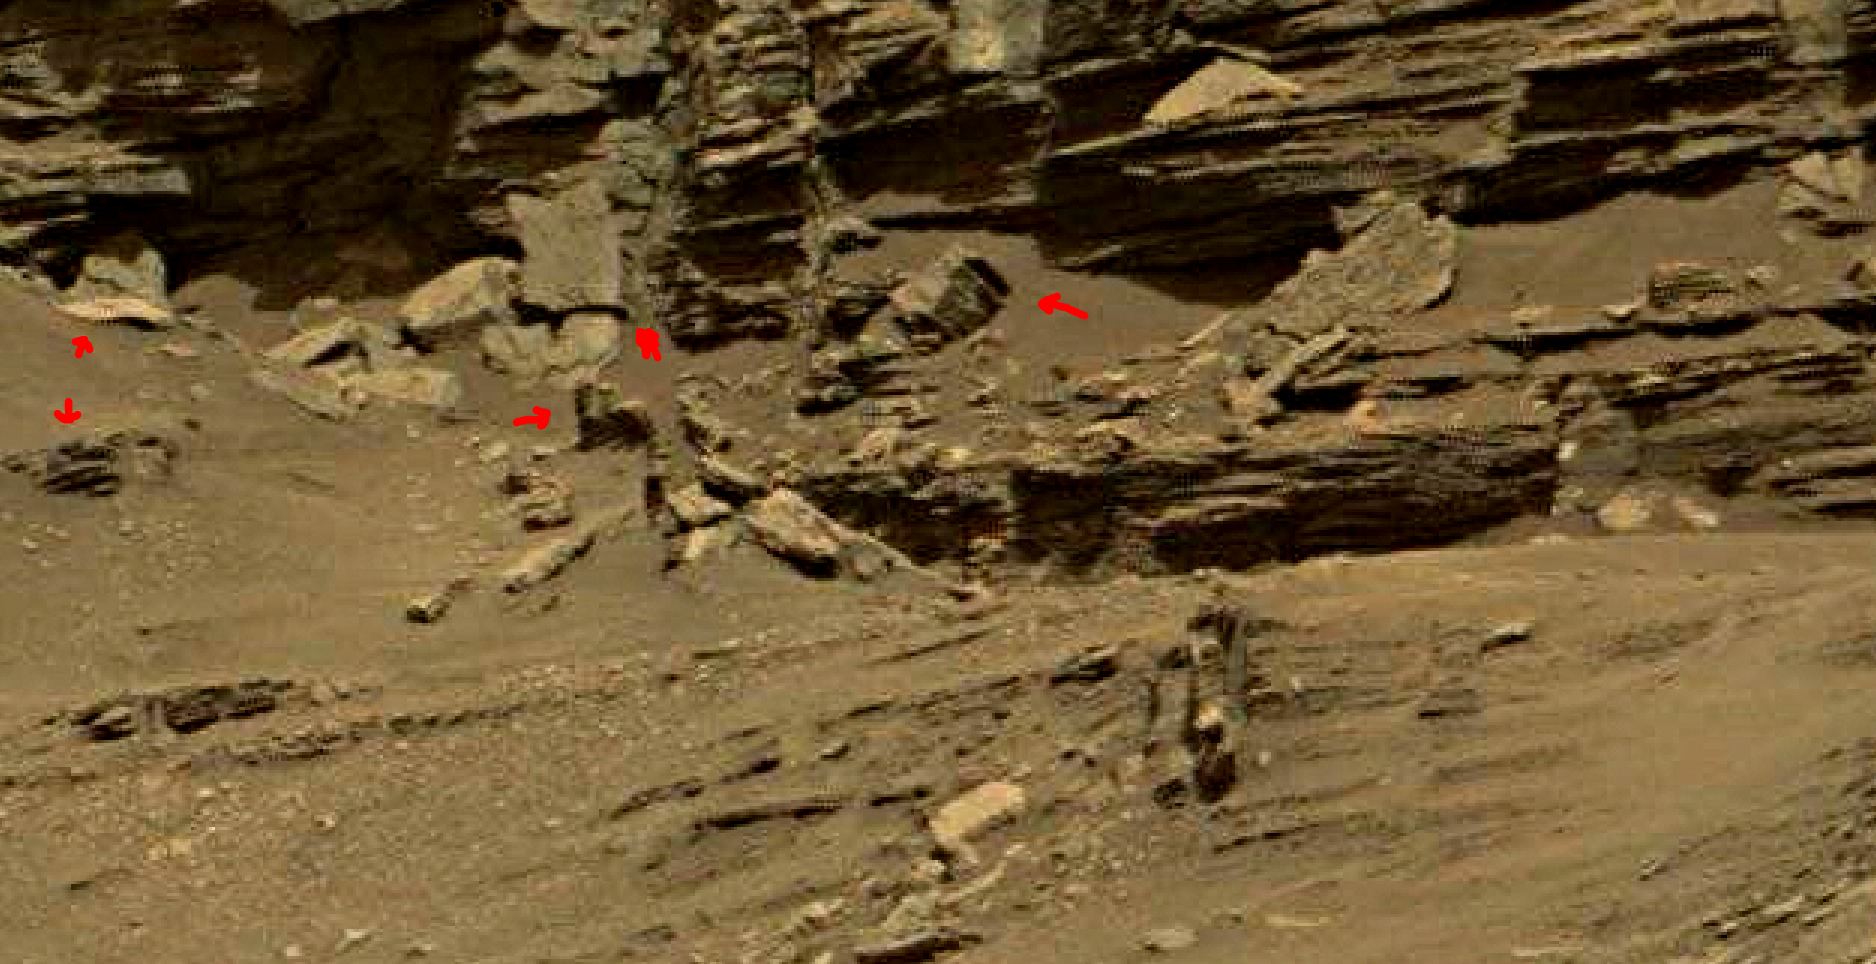 mars-sol-1454-anomaly-artifacts-21-was-life-on-mars